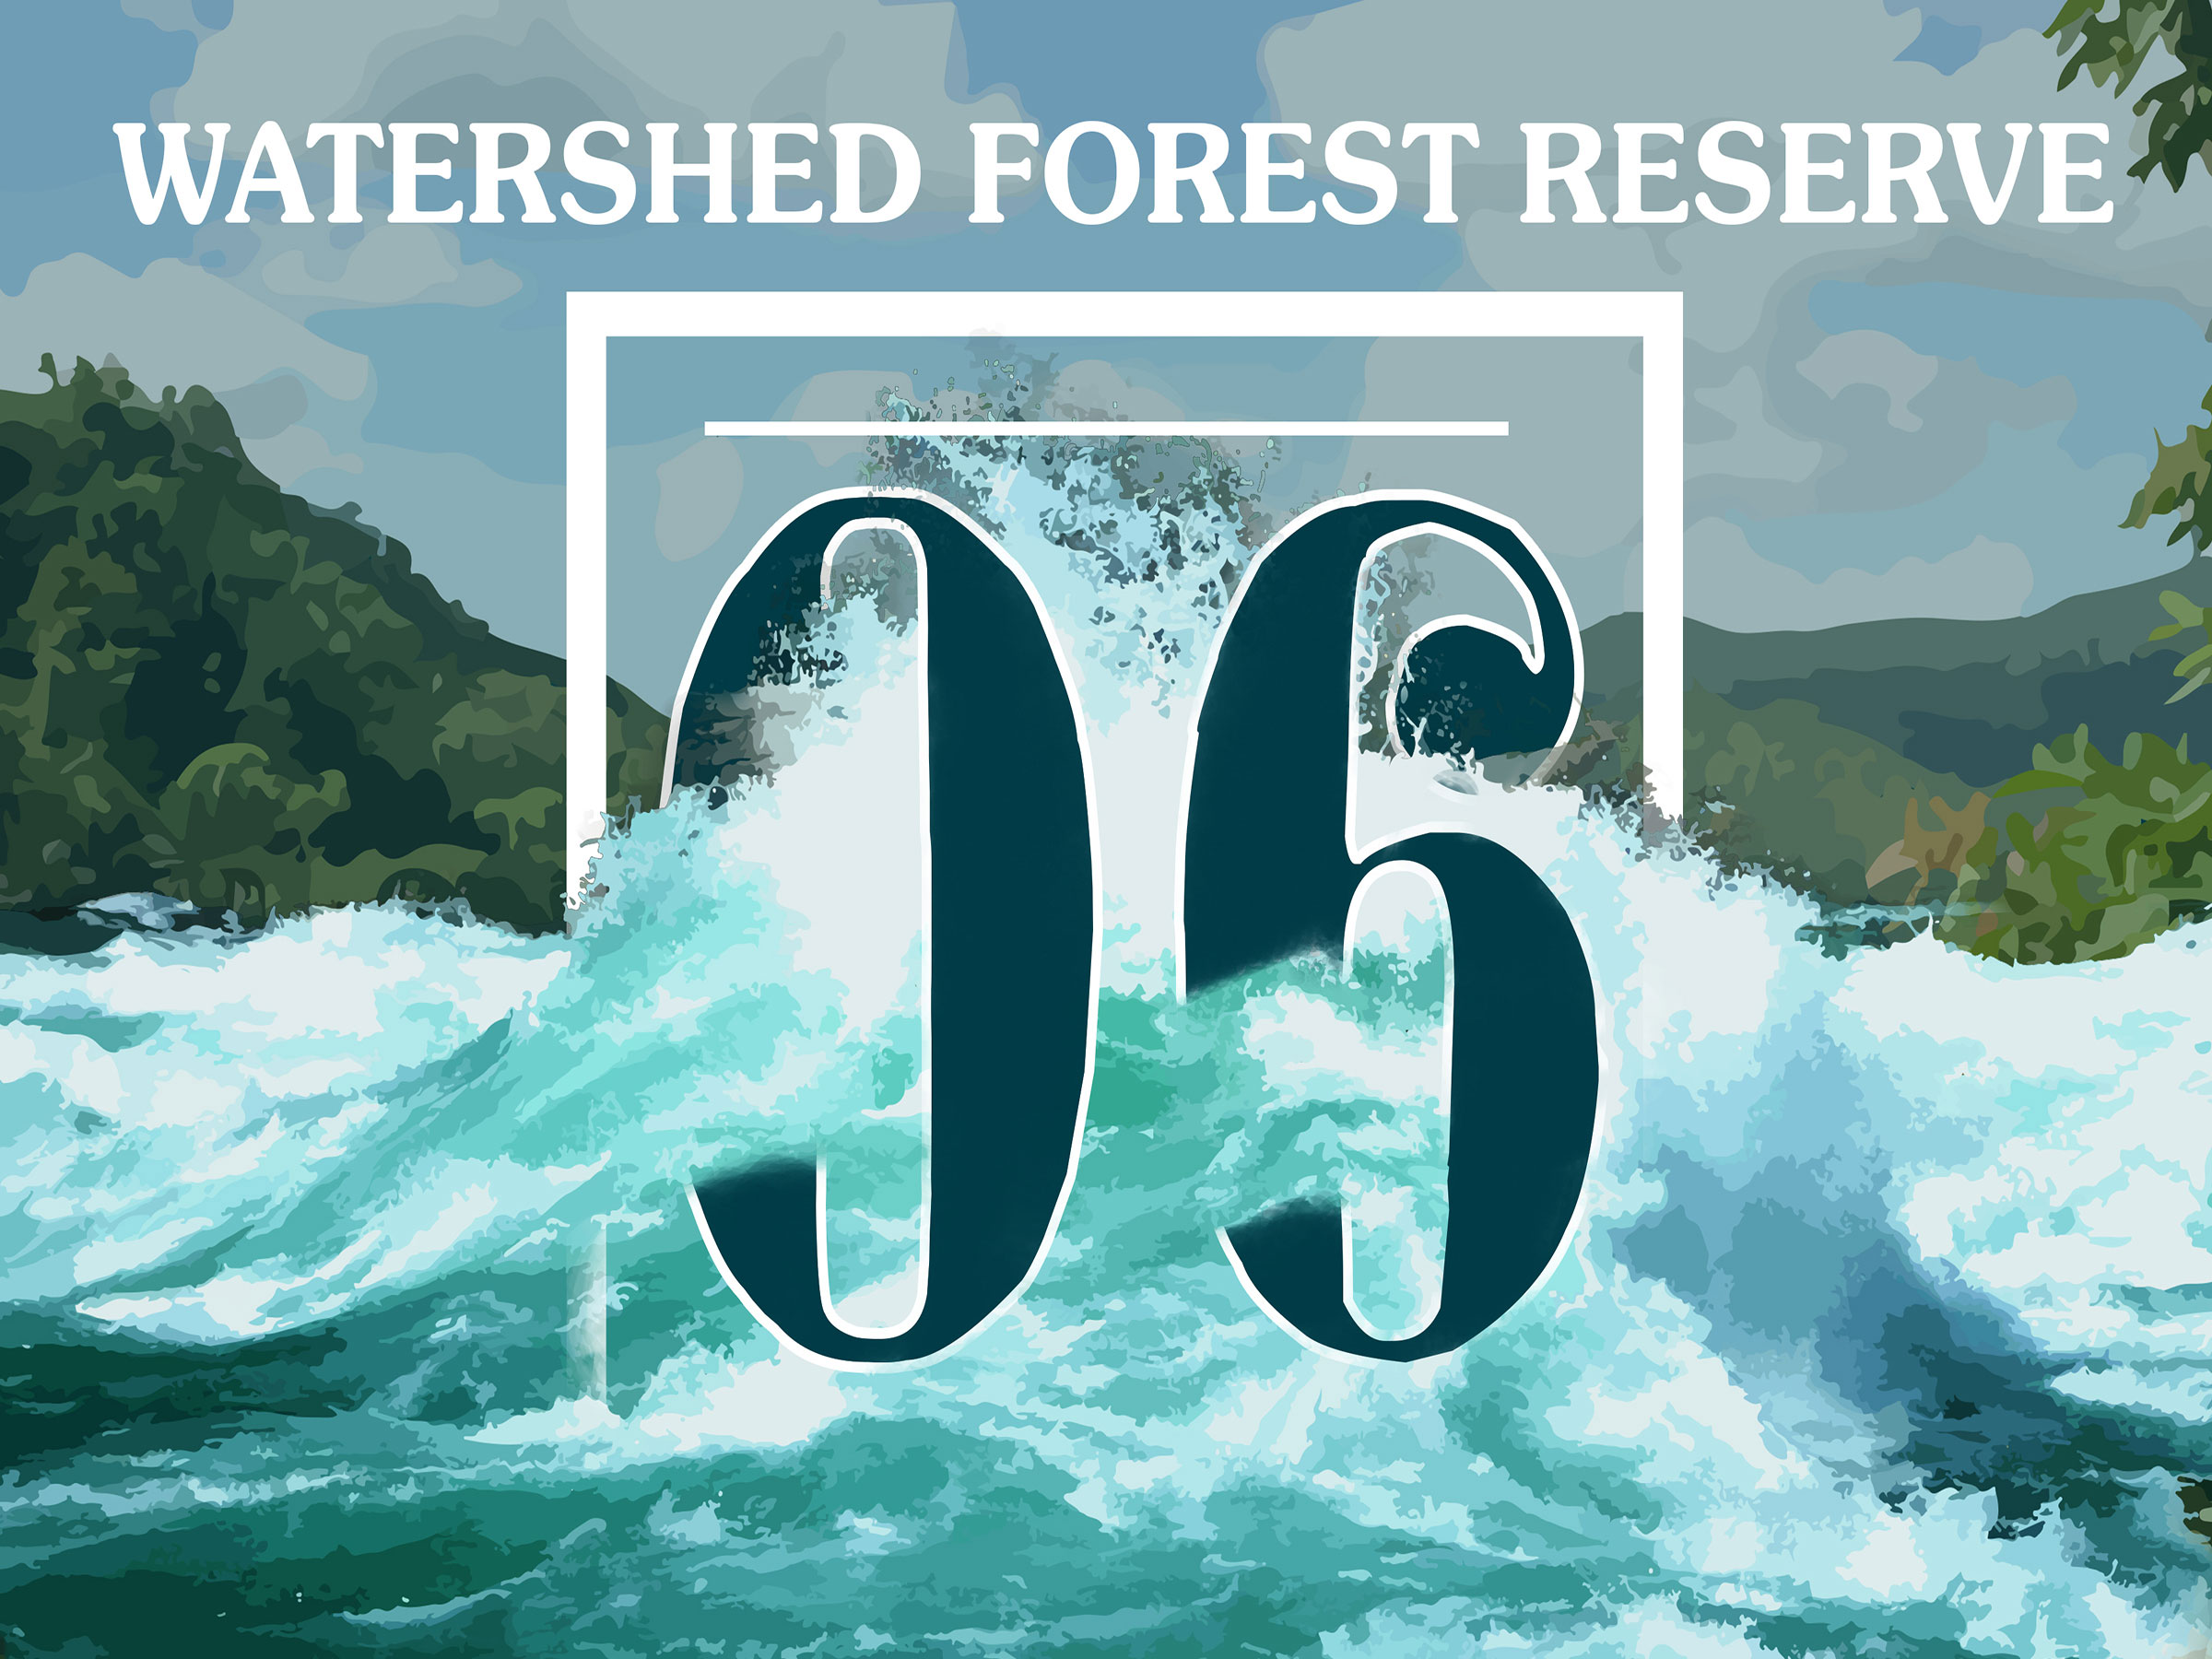 6Watershed Forest ReserveTEXT